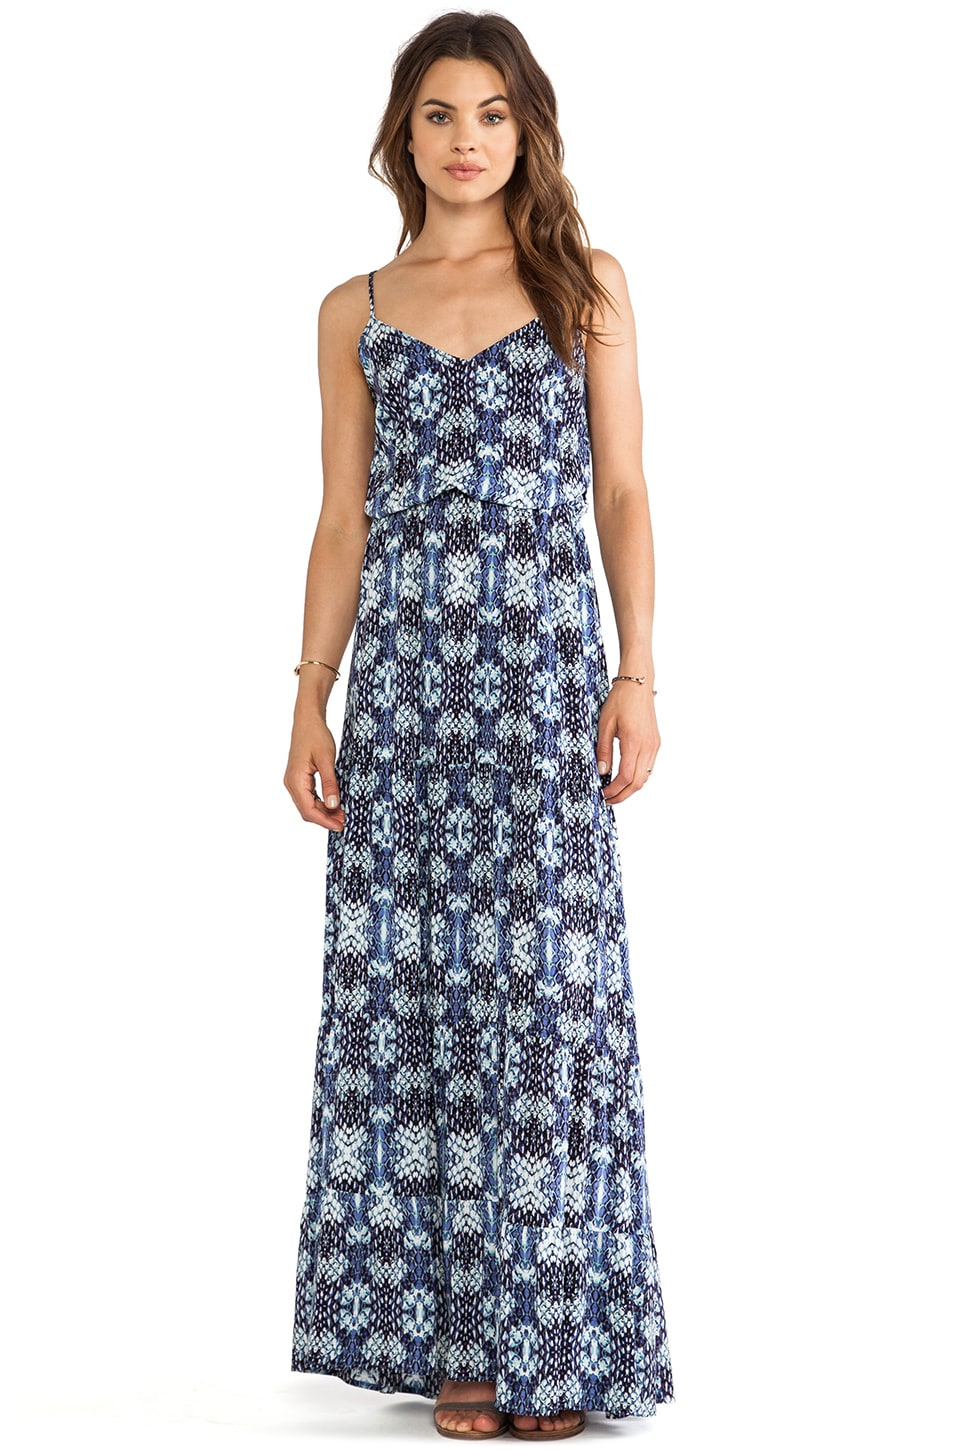 Eight Sixty Maxi Dress in Wisteria & Multi